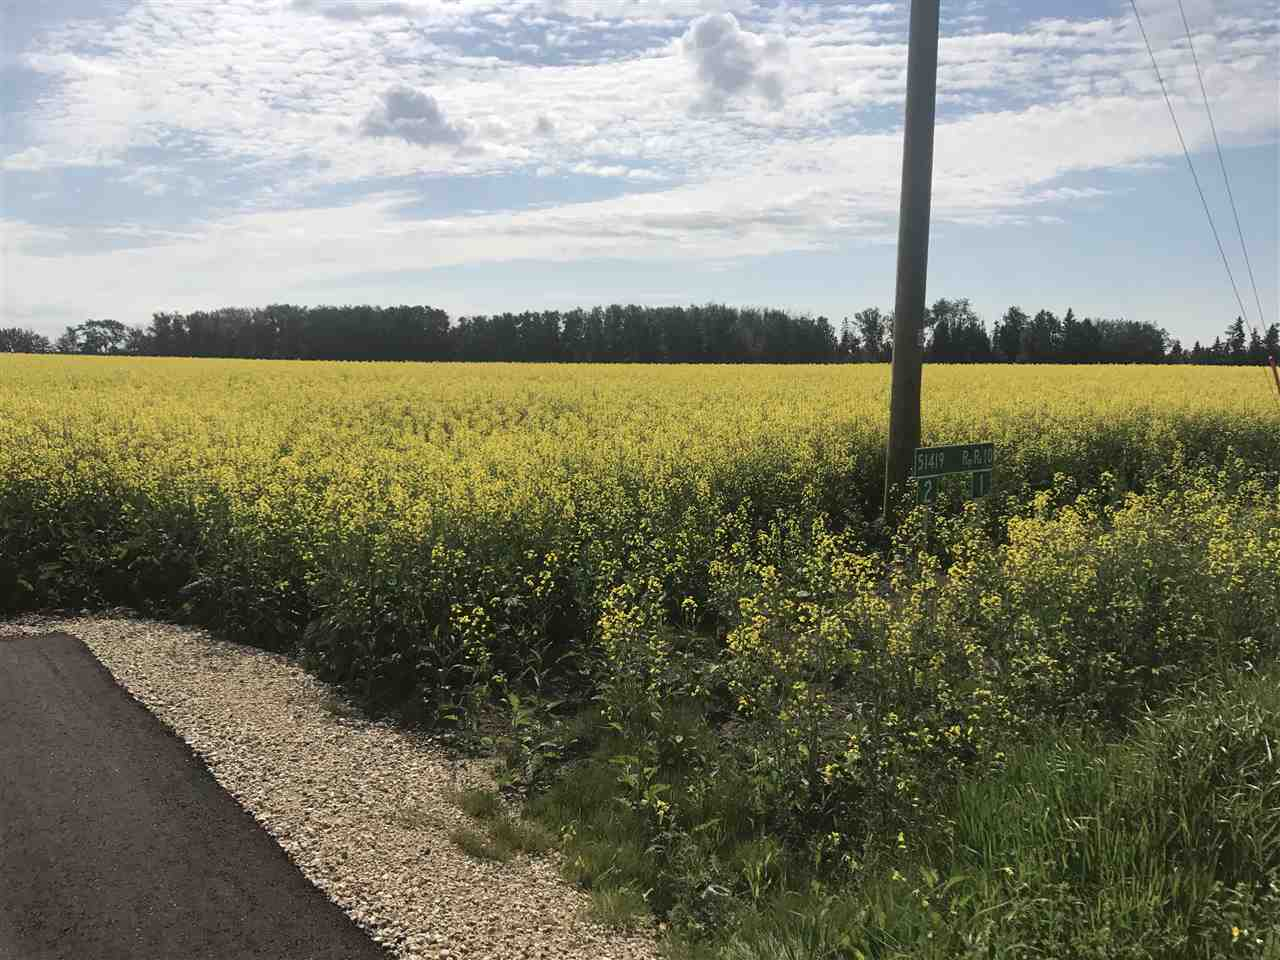 Main Photo: 1 51419 Rge Rd 10: Rural Parkland County Rural Land/Vacant Lot for sale : MLS® # E4074202